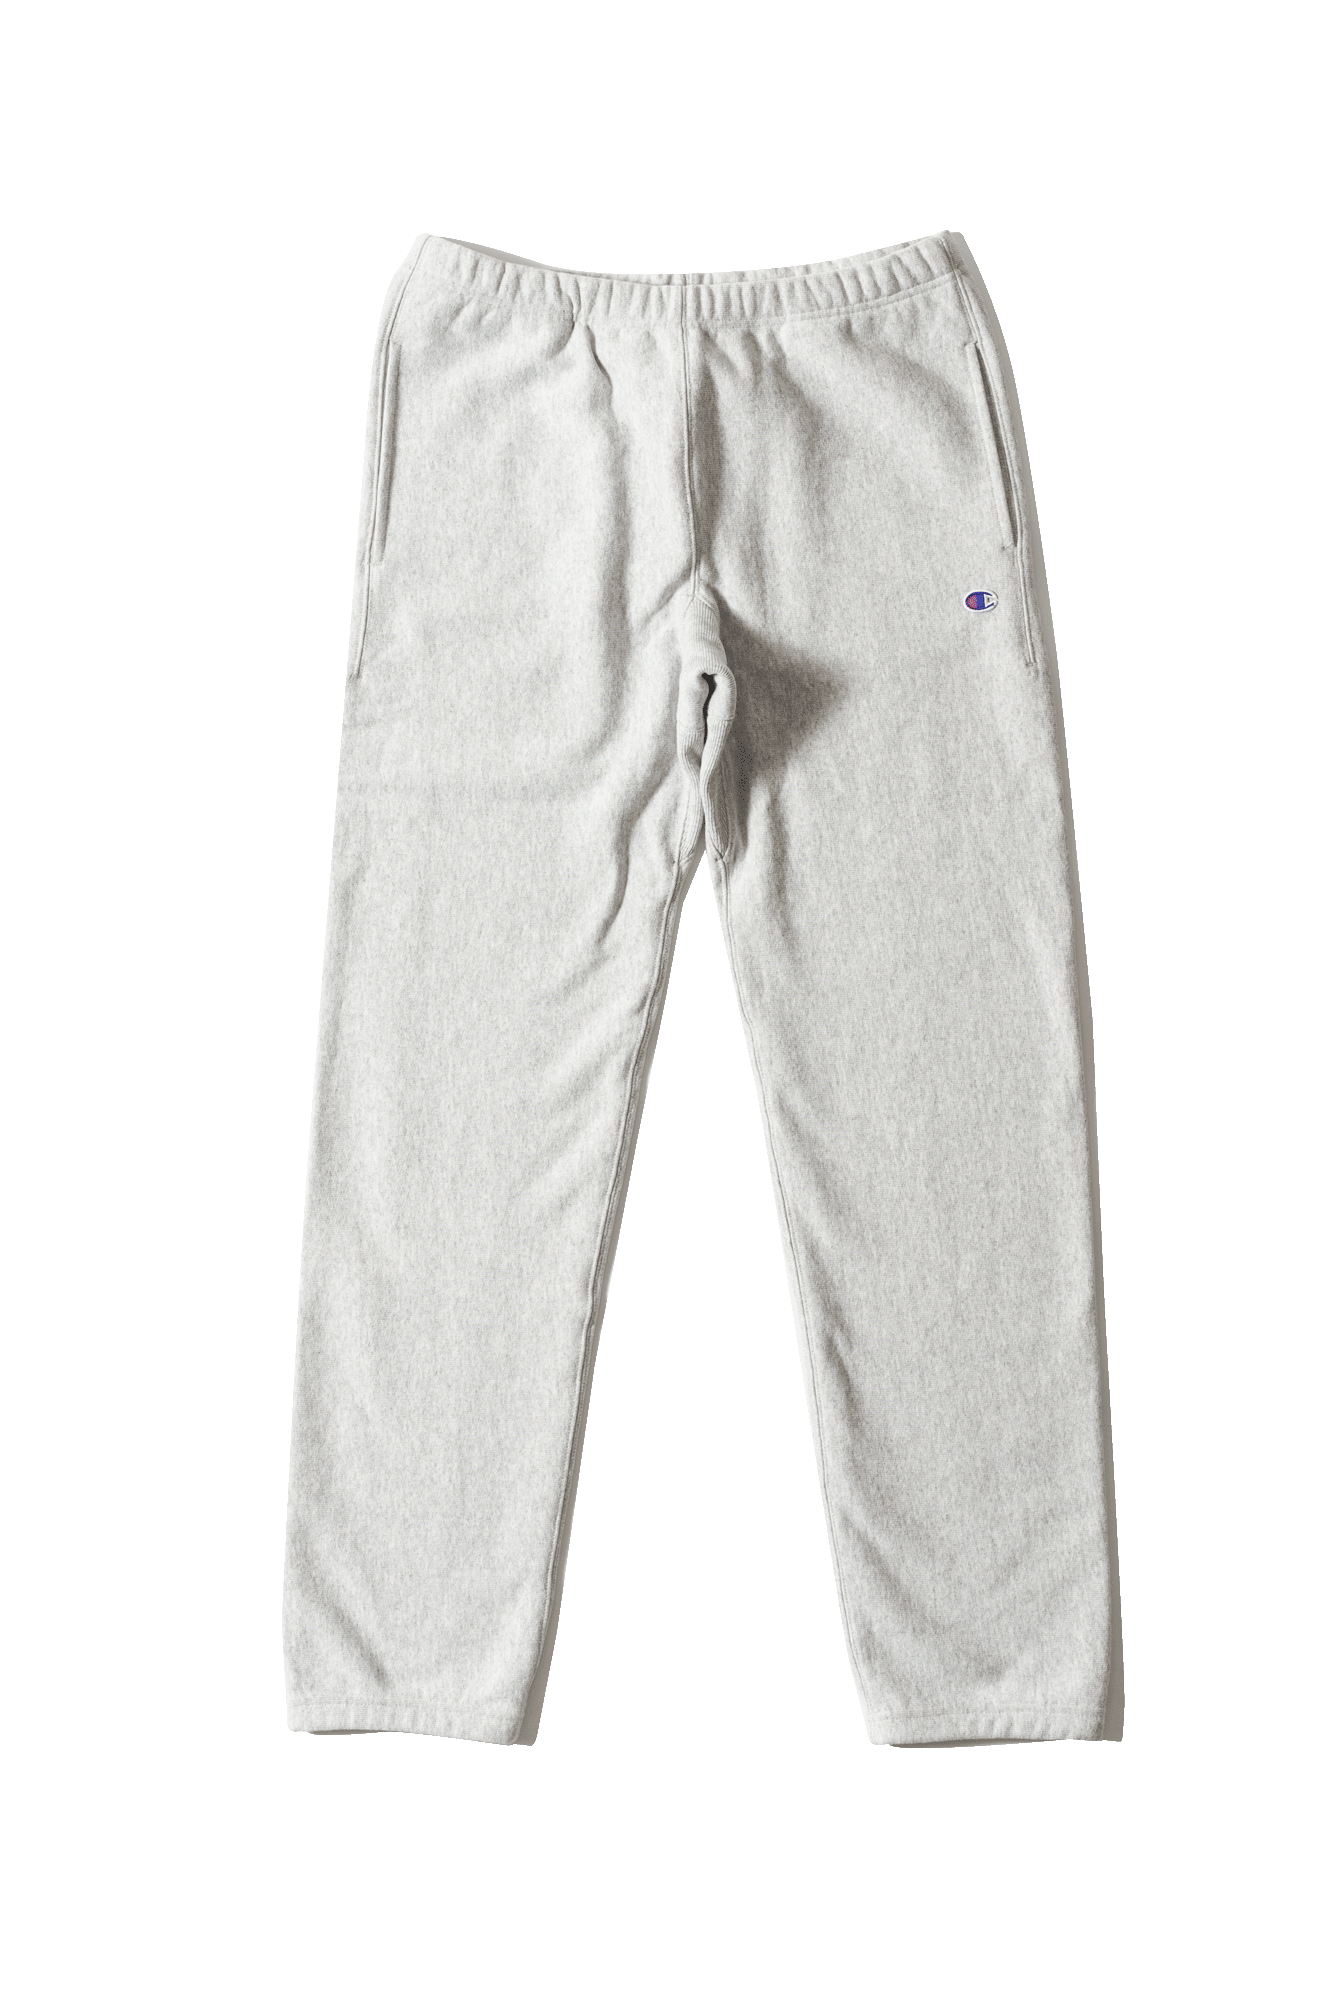 Champion Fleece pants Elastic Cuff Fleece Pants Grey 212582#000#EM004#XS - One Block Down